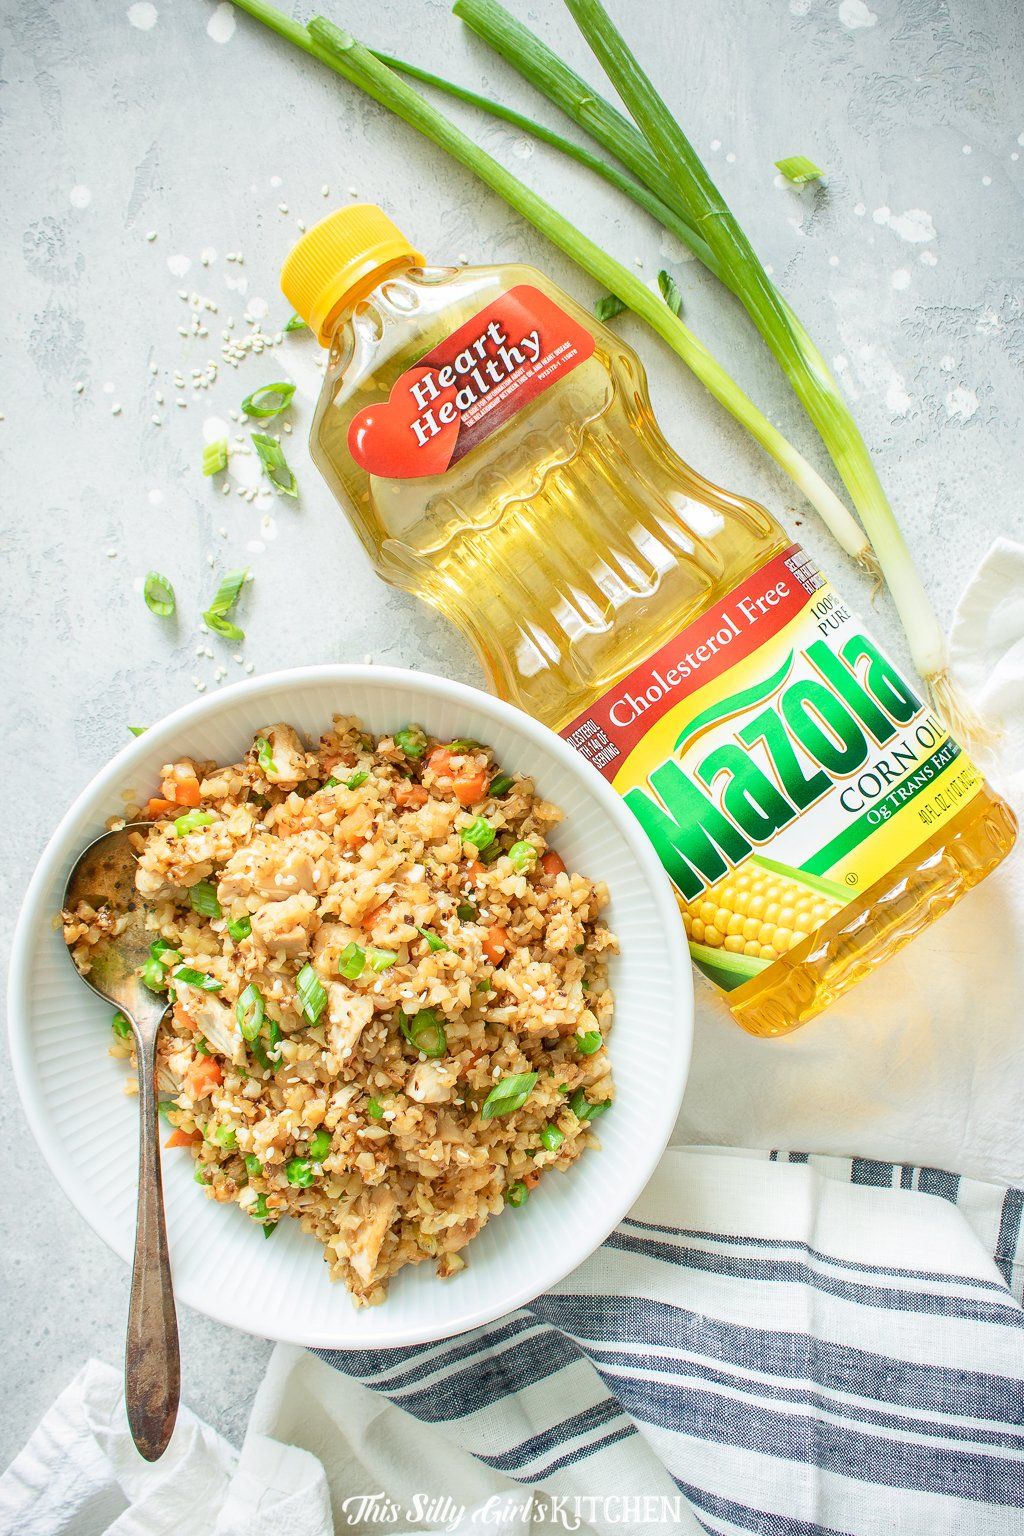 Loaded with veggies and chicken this cauliflower chicken fried rice is a healthier alternative to classic fried rice. #recipe from thissillygirlskitchen.com #friedrice #chicken #chickenfriedrice #cauliflowerrice